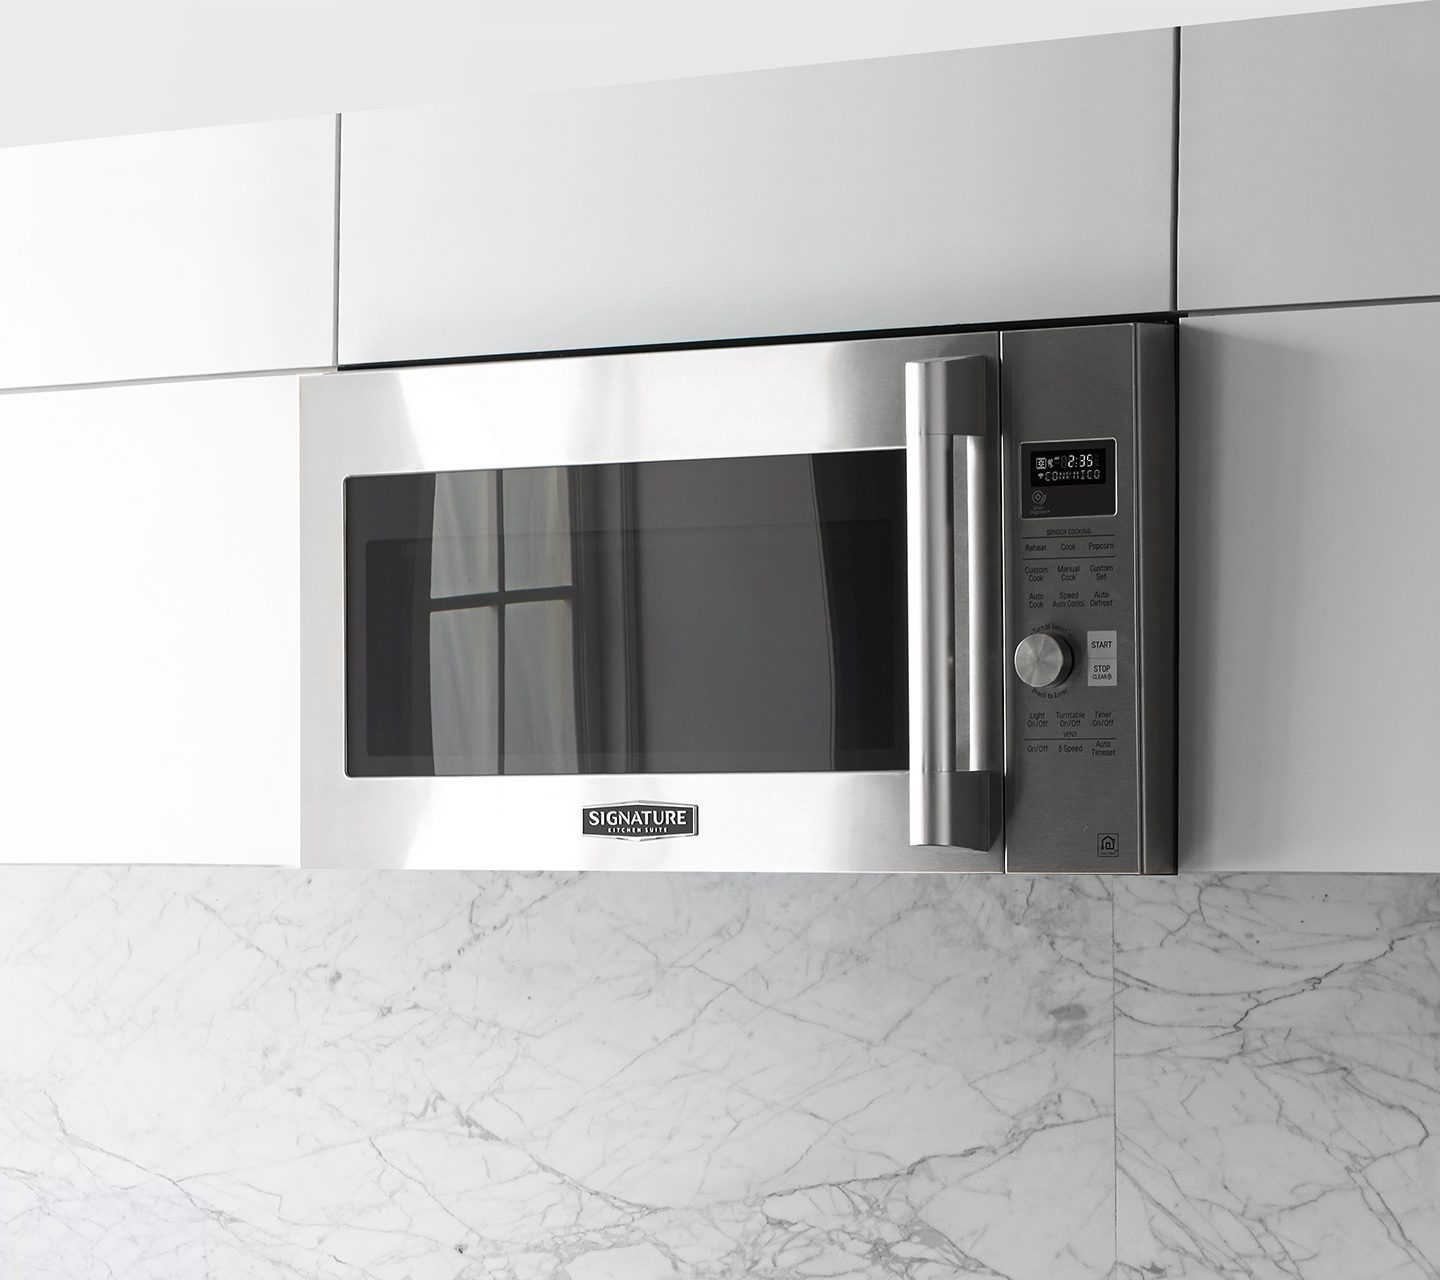 Kitchen Suite: Modern & Powerful Microwave Ovens